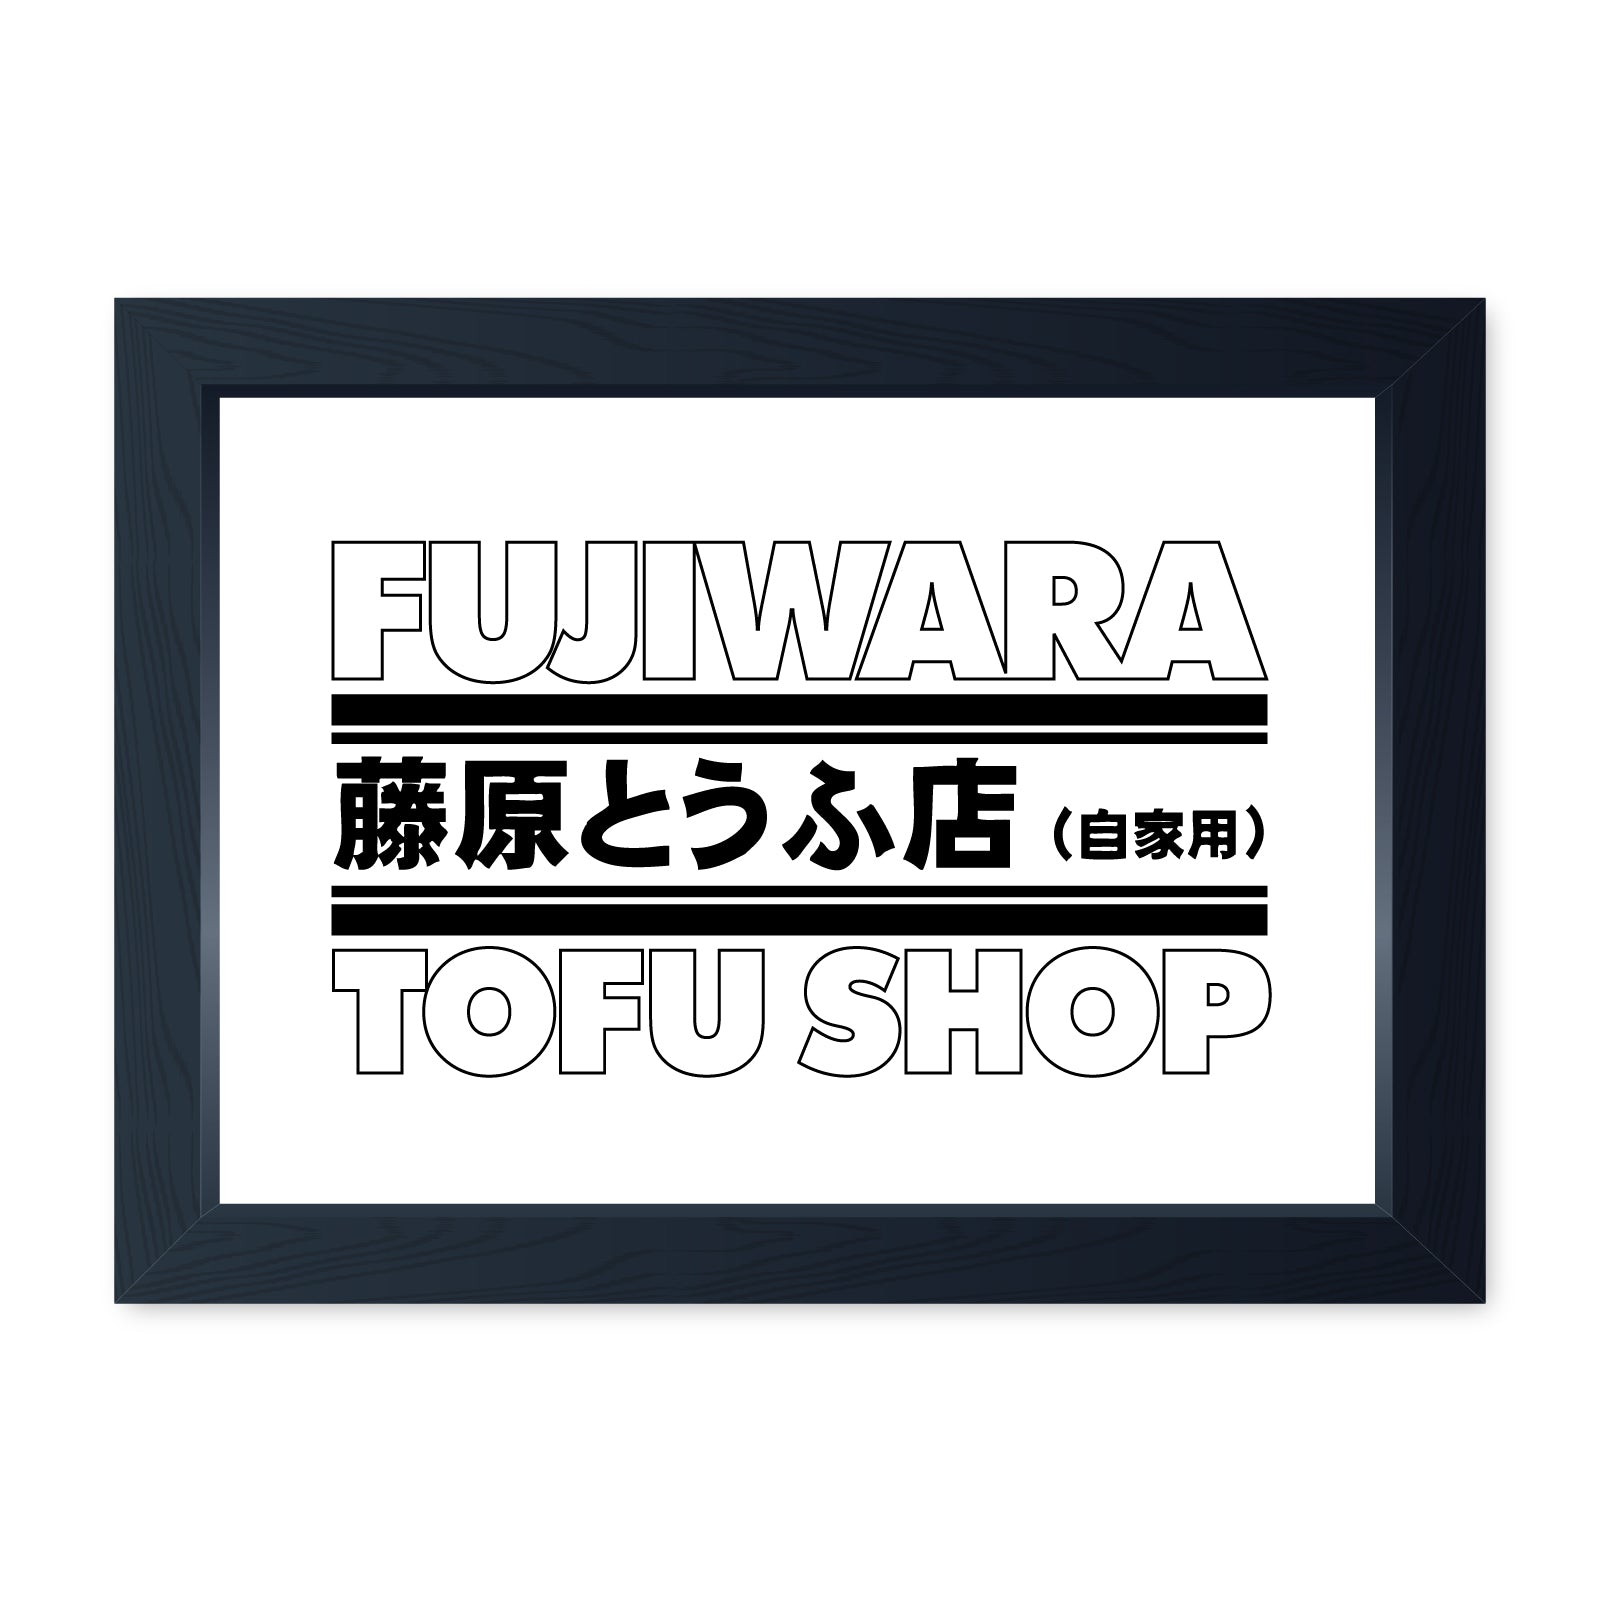 Fujiwara Tofu Shop, Framed Or Frameless Poster Print - JDM Anime AE86 Wall Art